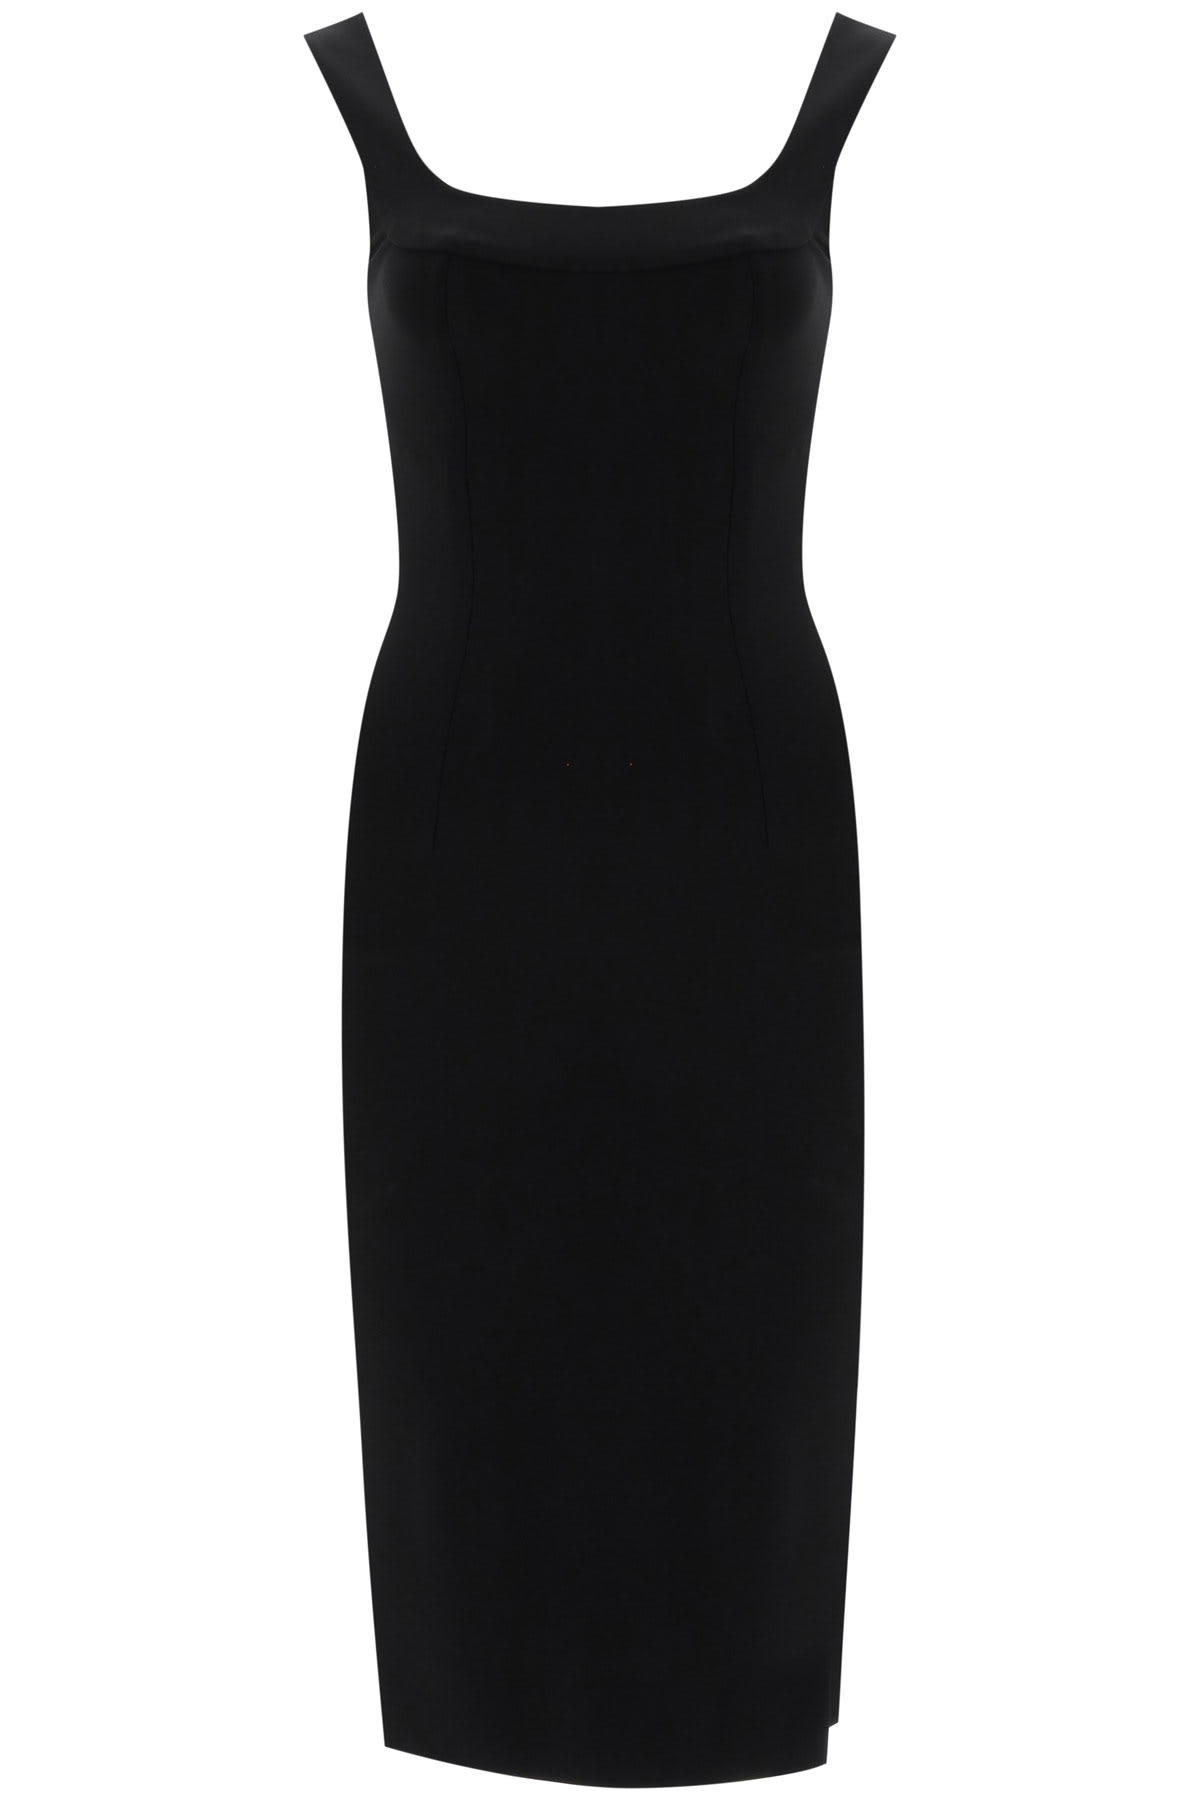 Buy Jersey Pencil Dress online, shop Dolce & Gabbana with free shipping